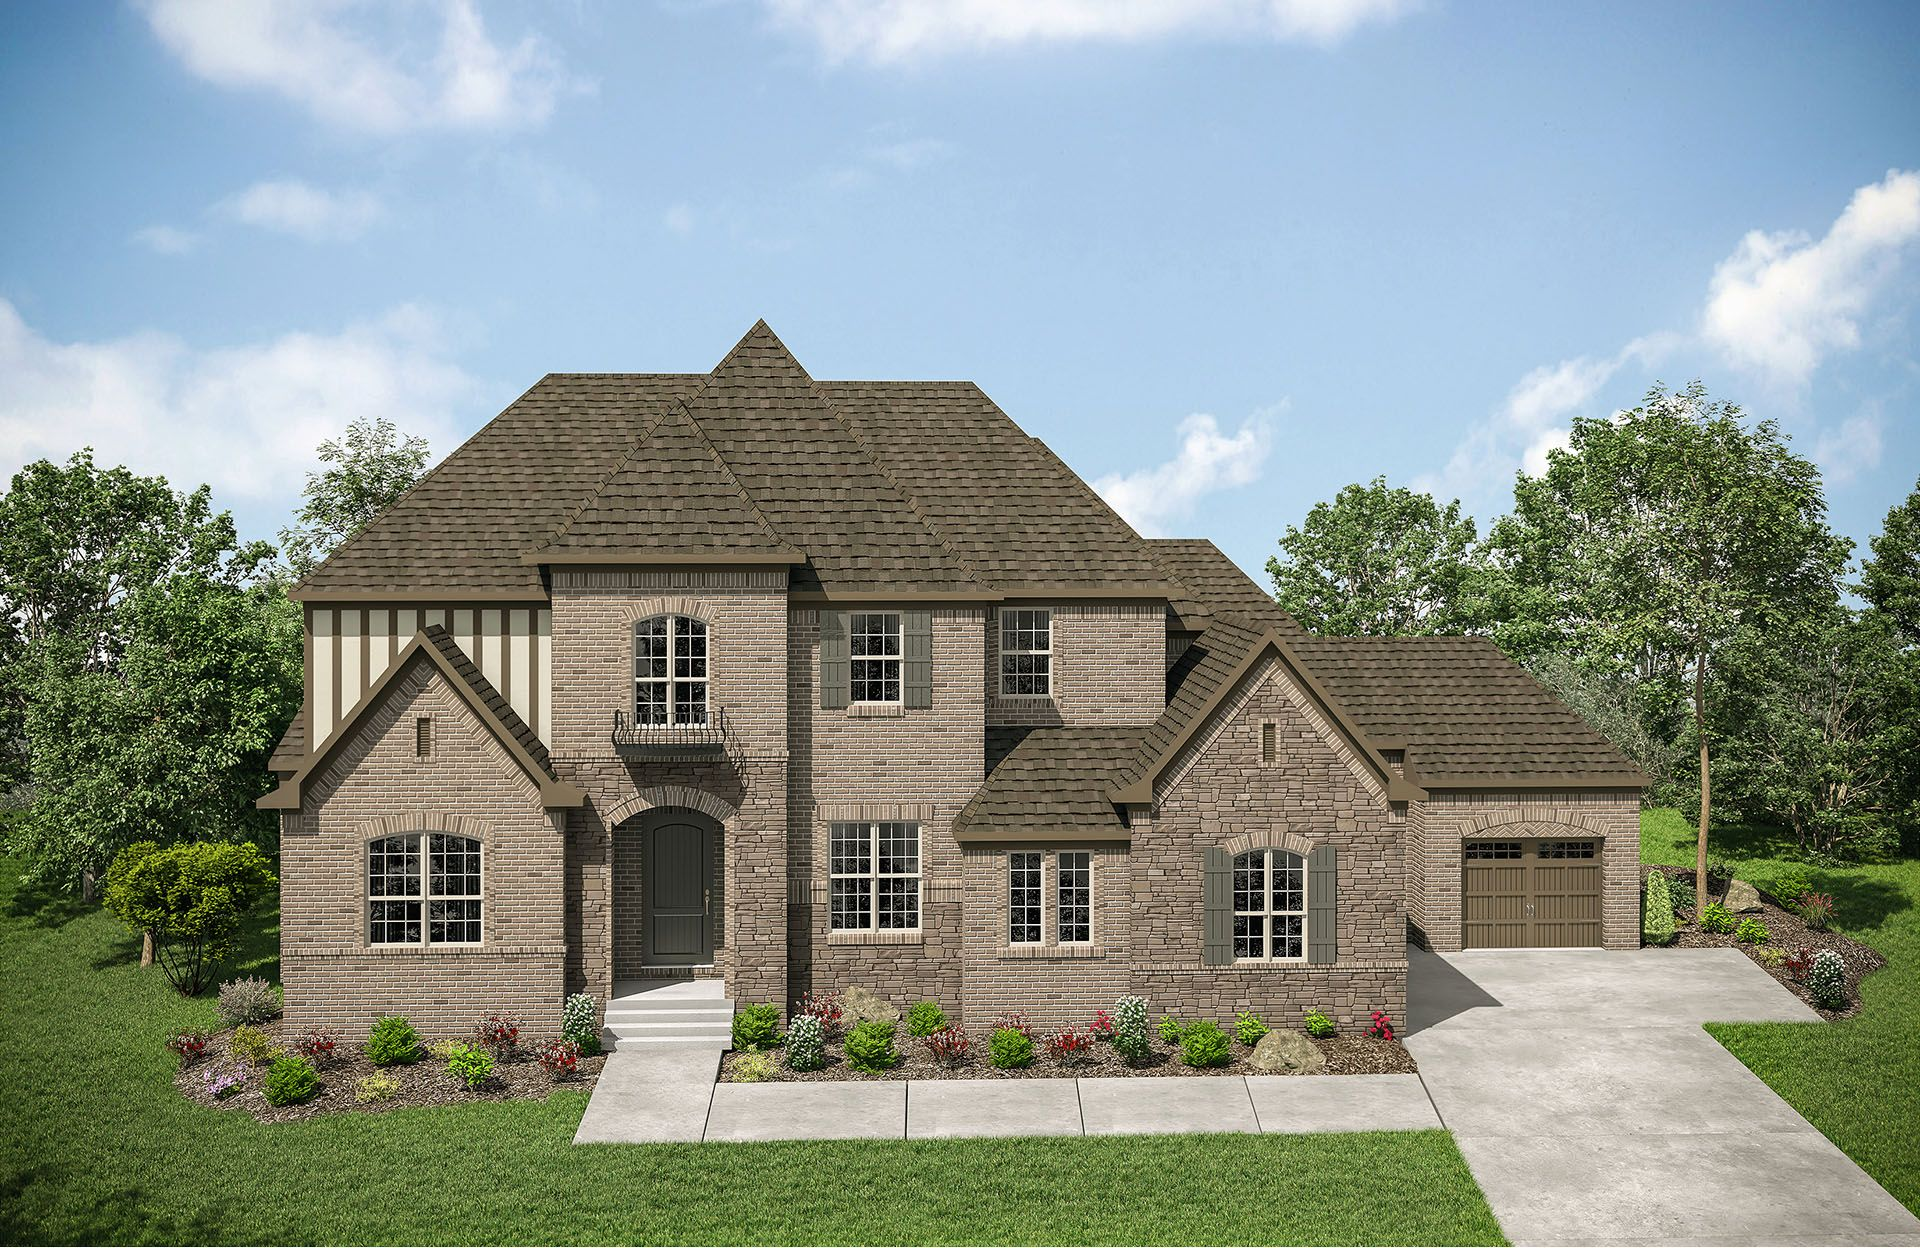 Single Family for Active at Asher - Colinas Ii 108 Telfair Lane Nolensville, Tennessee 37135 United States